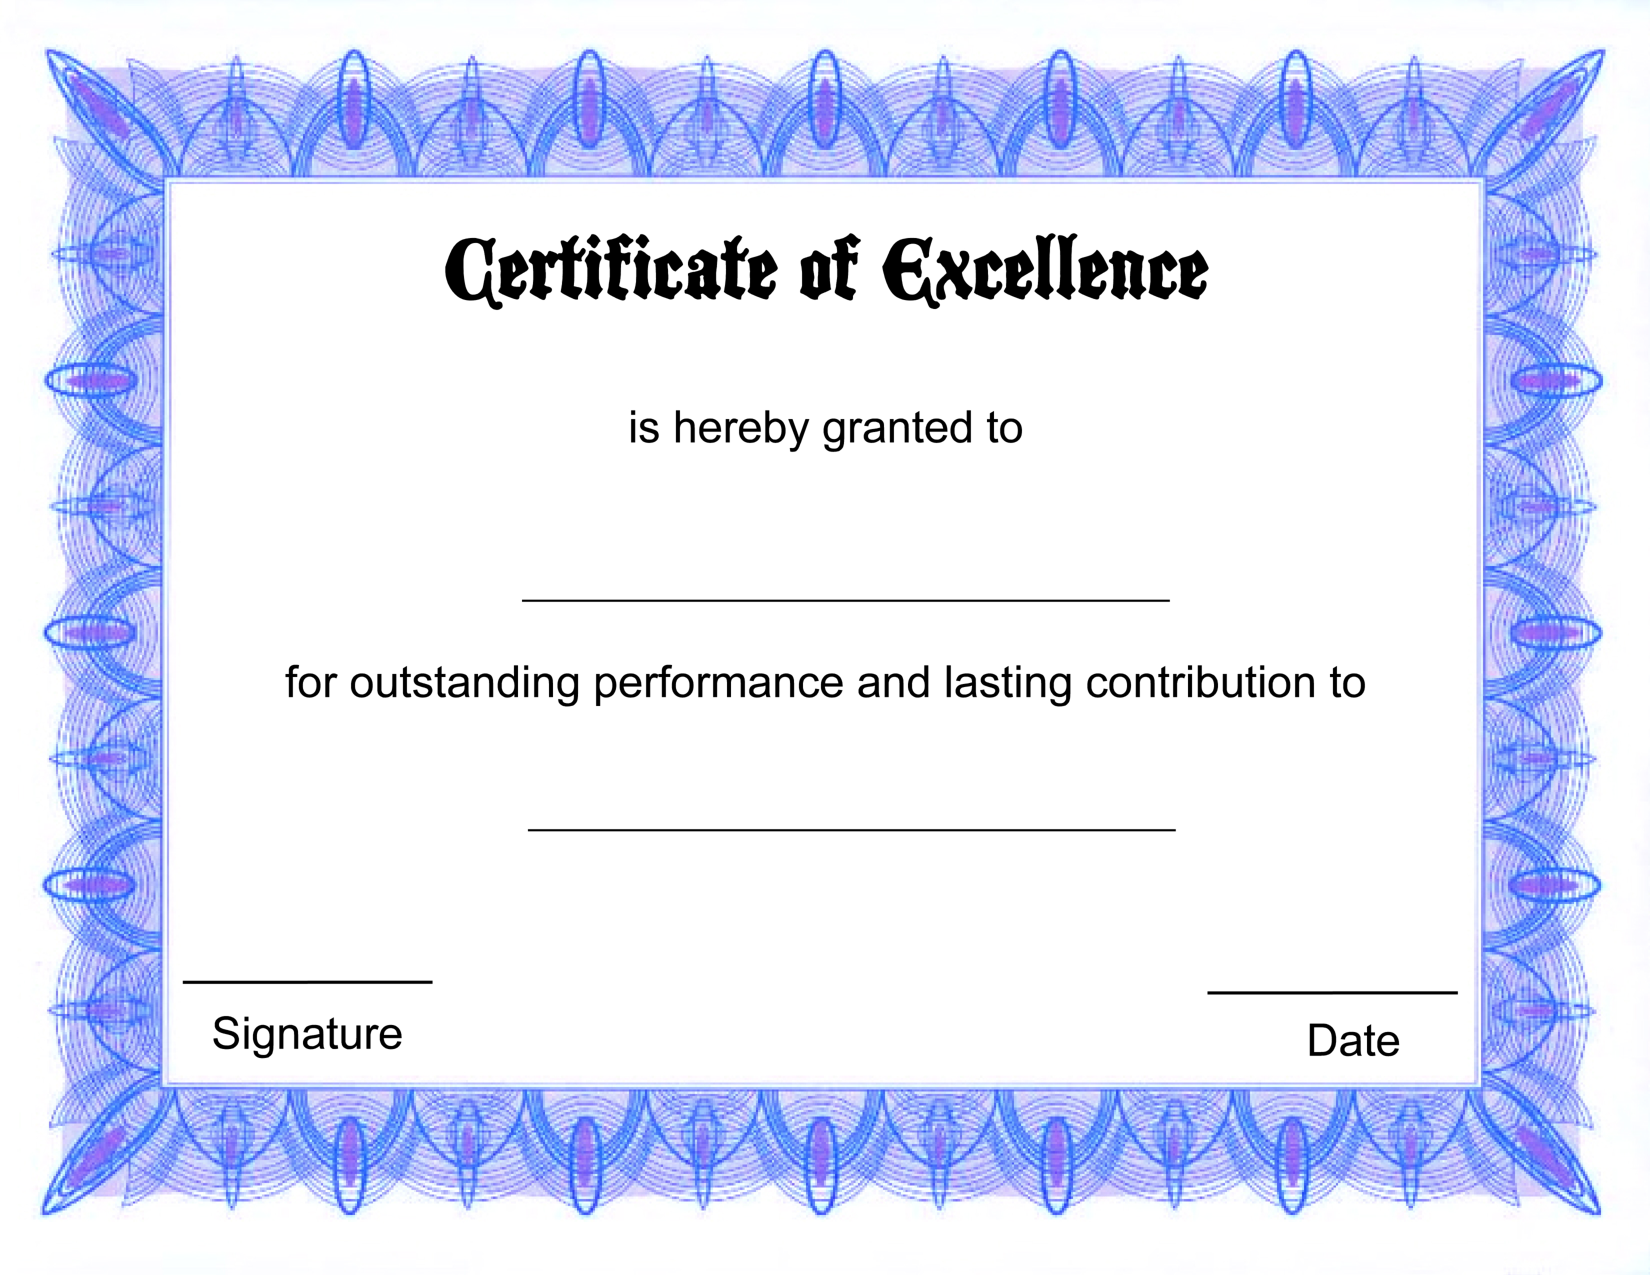 Blank certificate templates of excellence ce pinterest blank certificate of excellence template 5 free printable certificates of excellence templates certificate of excellence free printable allfreeprintablecom 1betcityfo Gallery